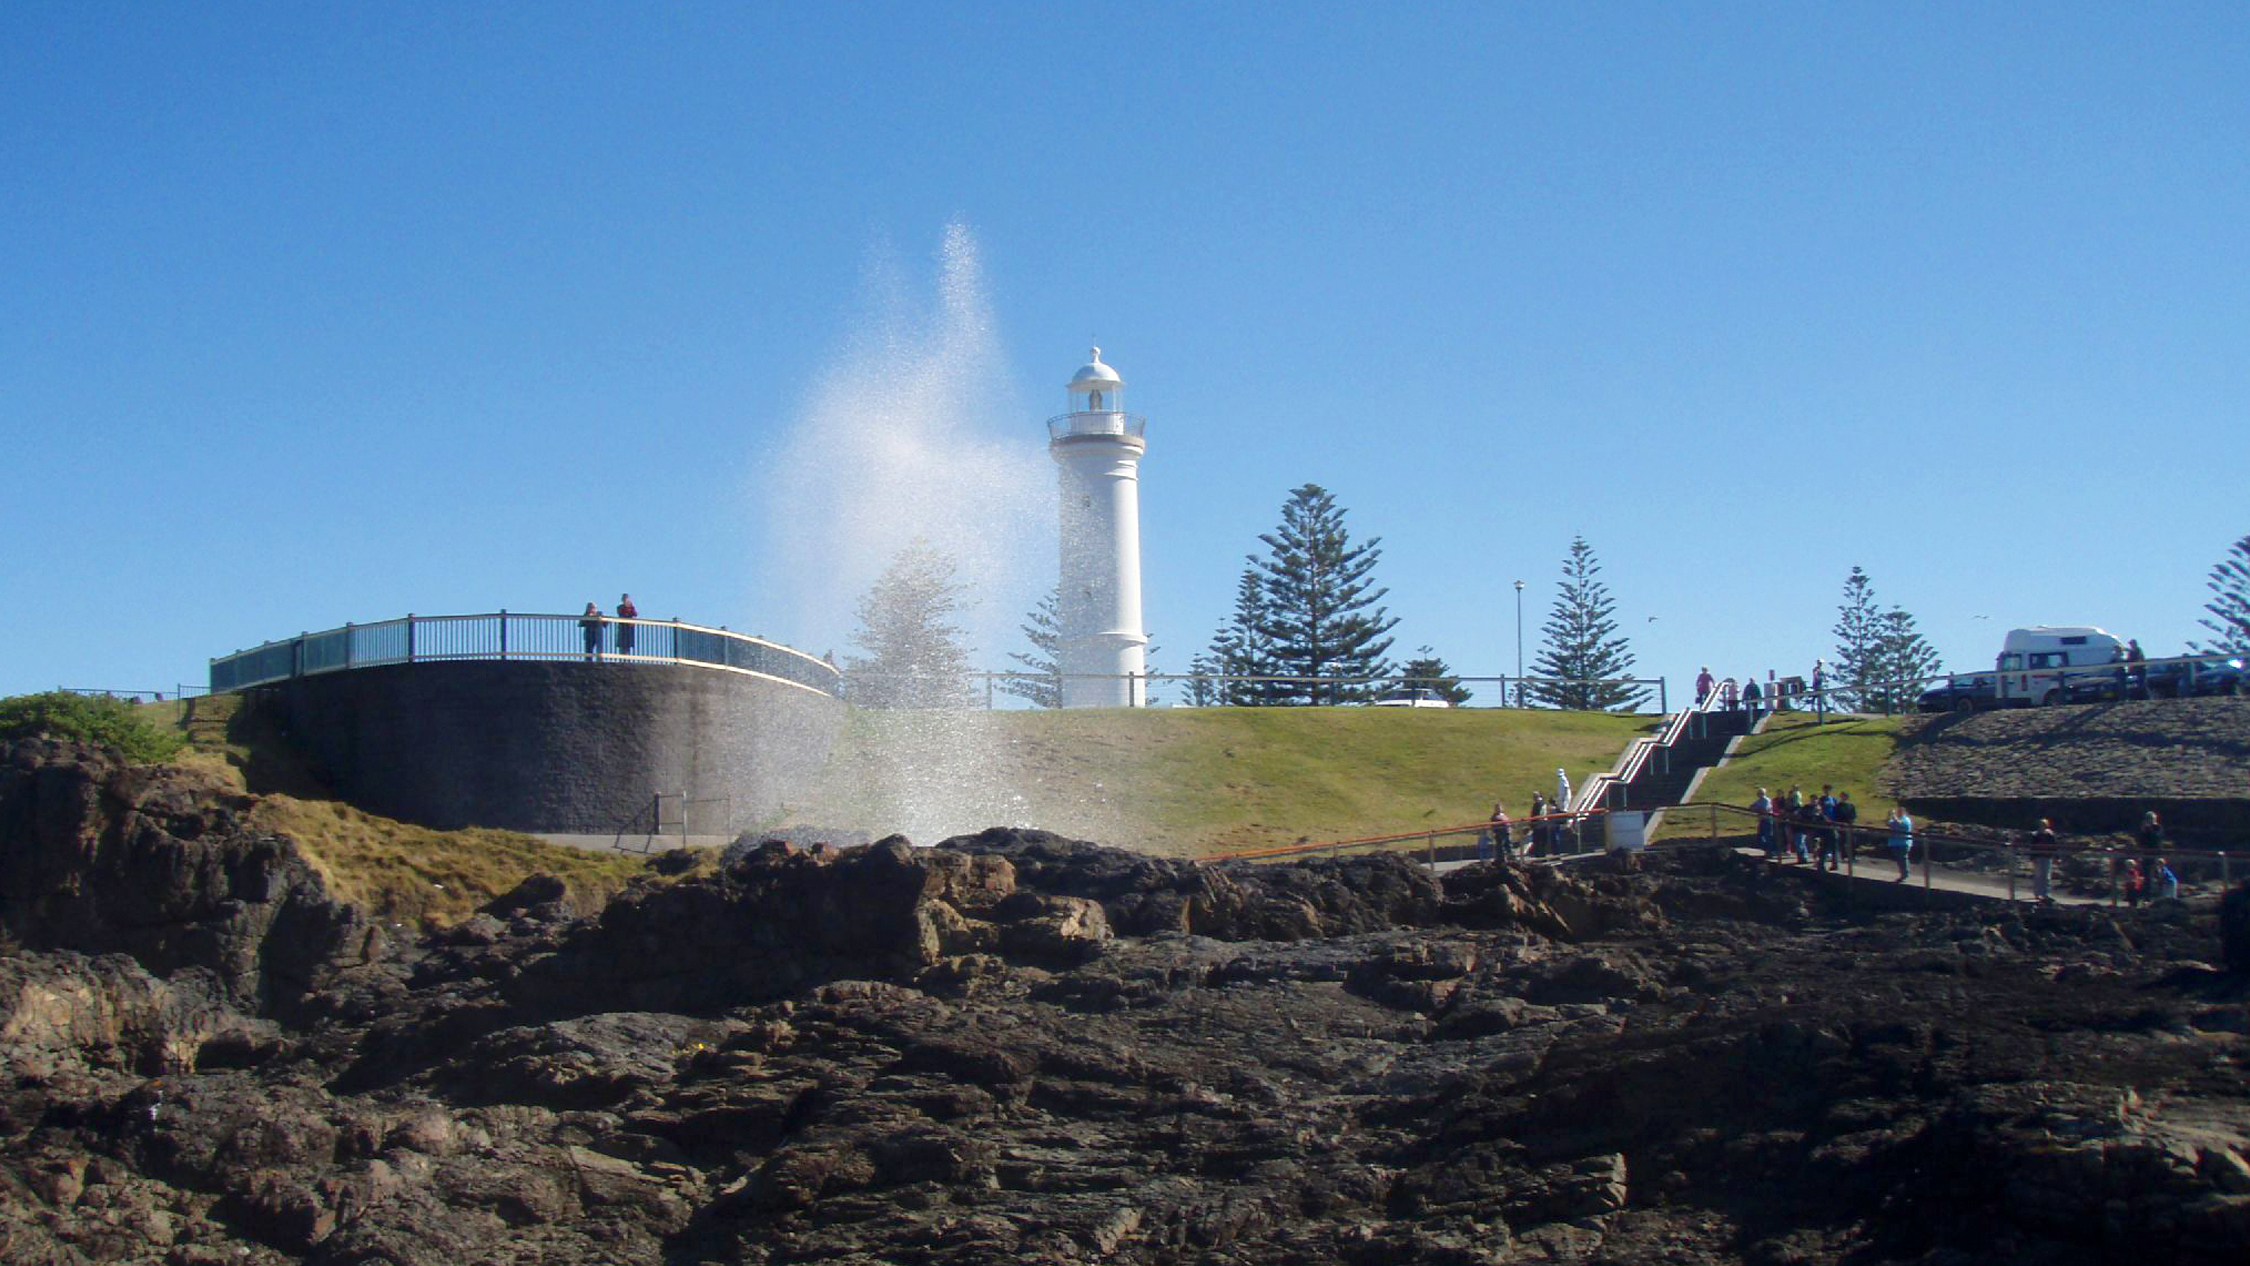 Kiama Blow Hole Light House